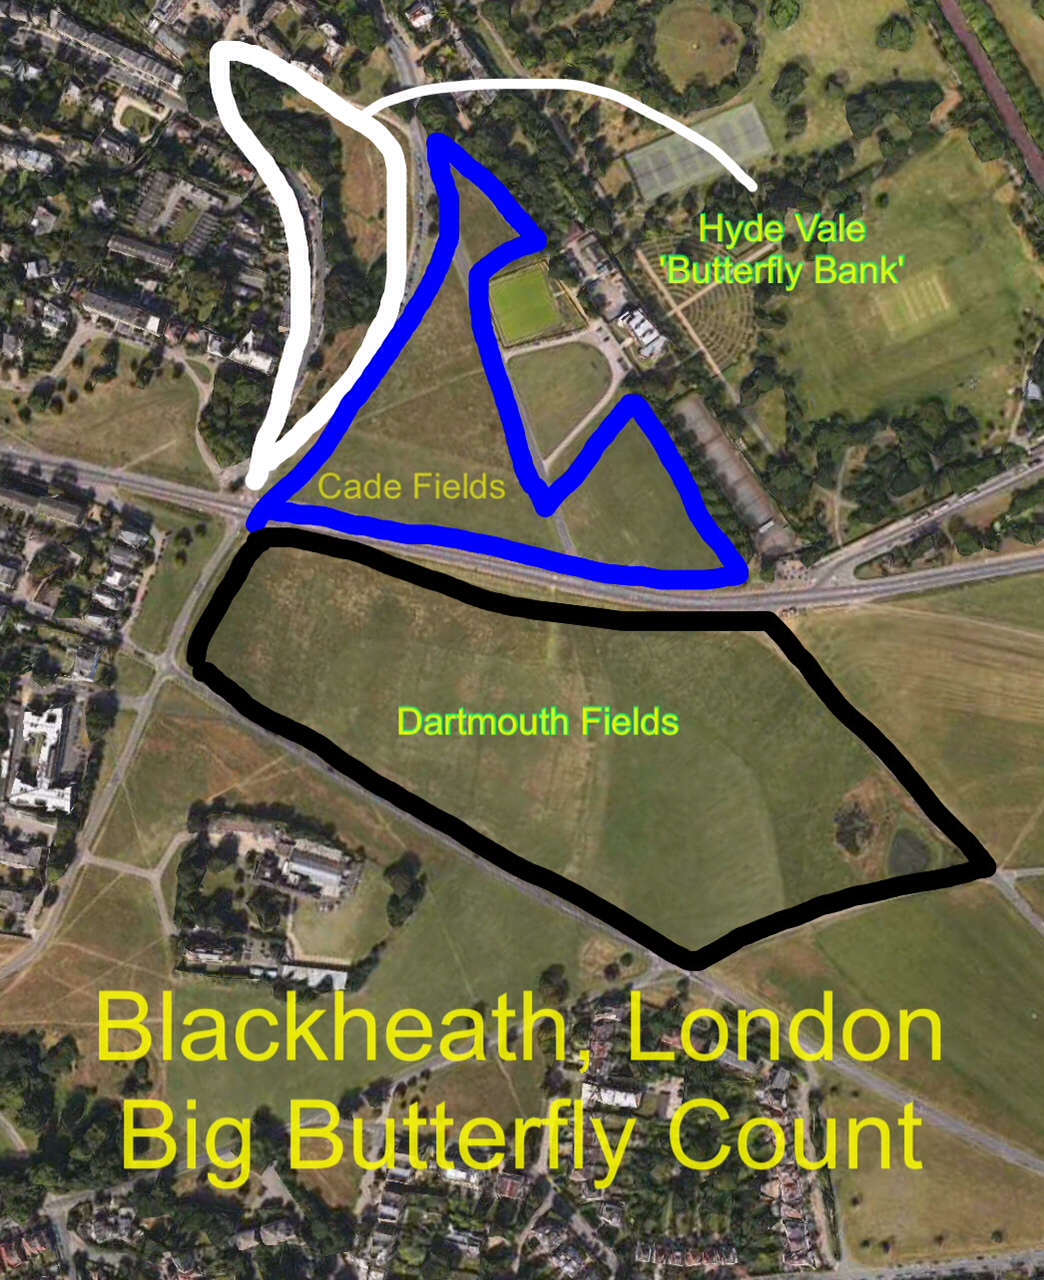 Map of Blackheath - Big butterfly Count areas